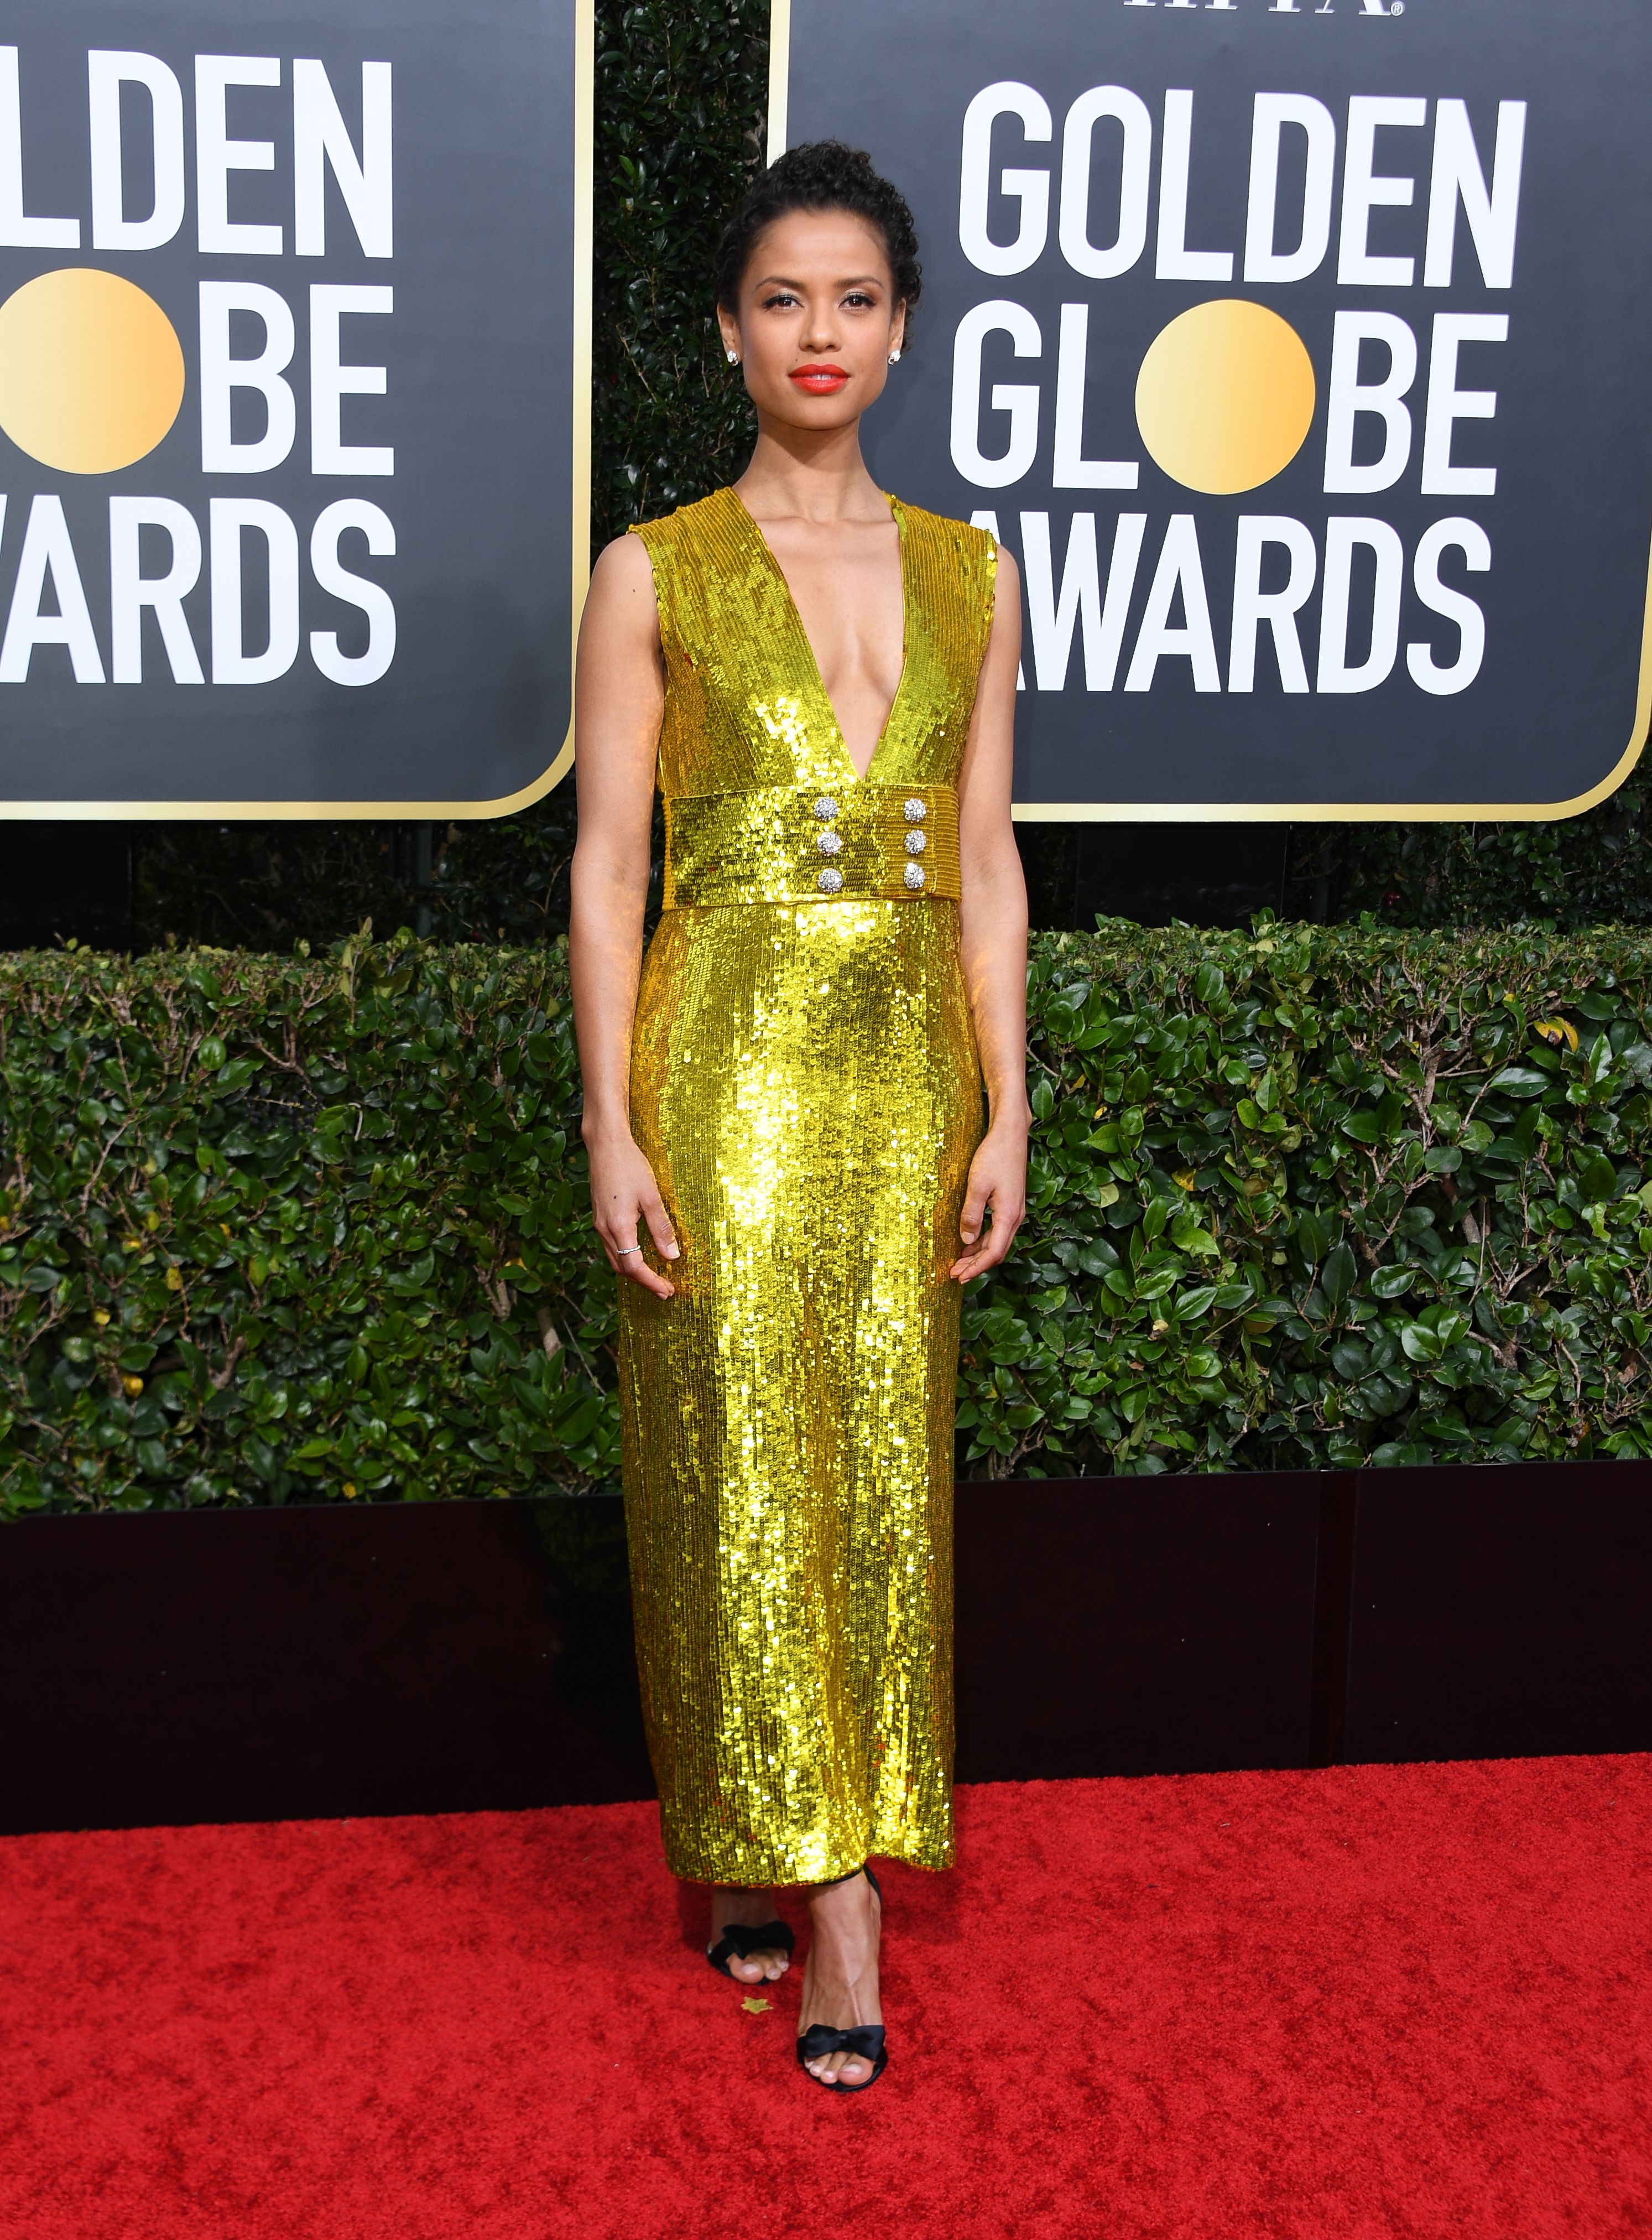 British actress Gugu Mbatha-Raw arrives for the 77th annual Golden Globe Awards on January 5, 2020, at The Beverly Hilton hotel in Beverly Hills, California. (Photo by VALERIE MACON / AFP) (Photo by VALERIE MACON/AFP via Getty Images)